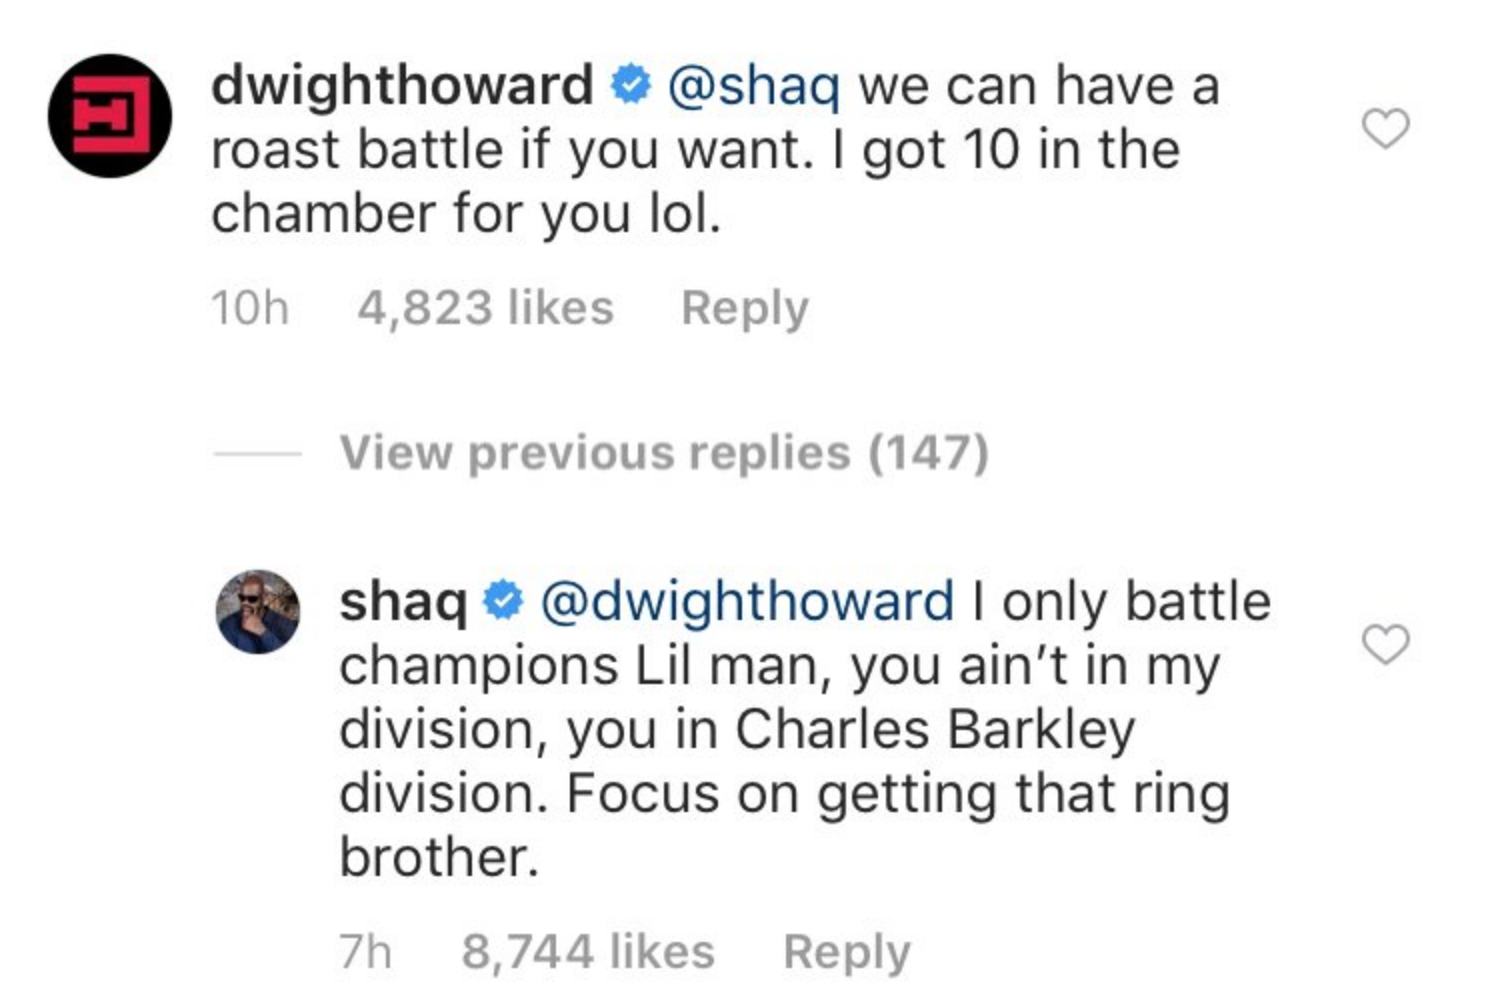 SHAQ WASN'T PLAYING IN THE IG COMMENTS  -